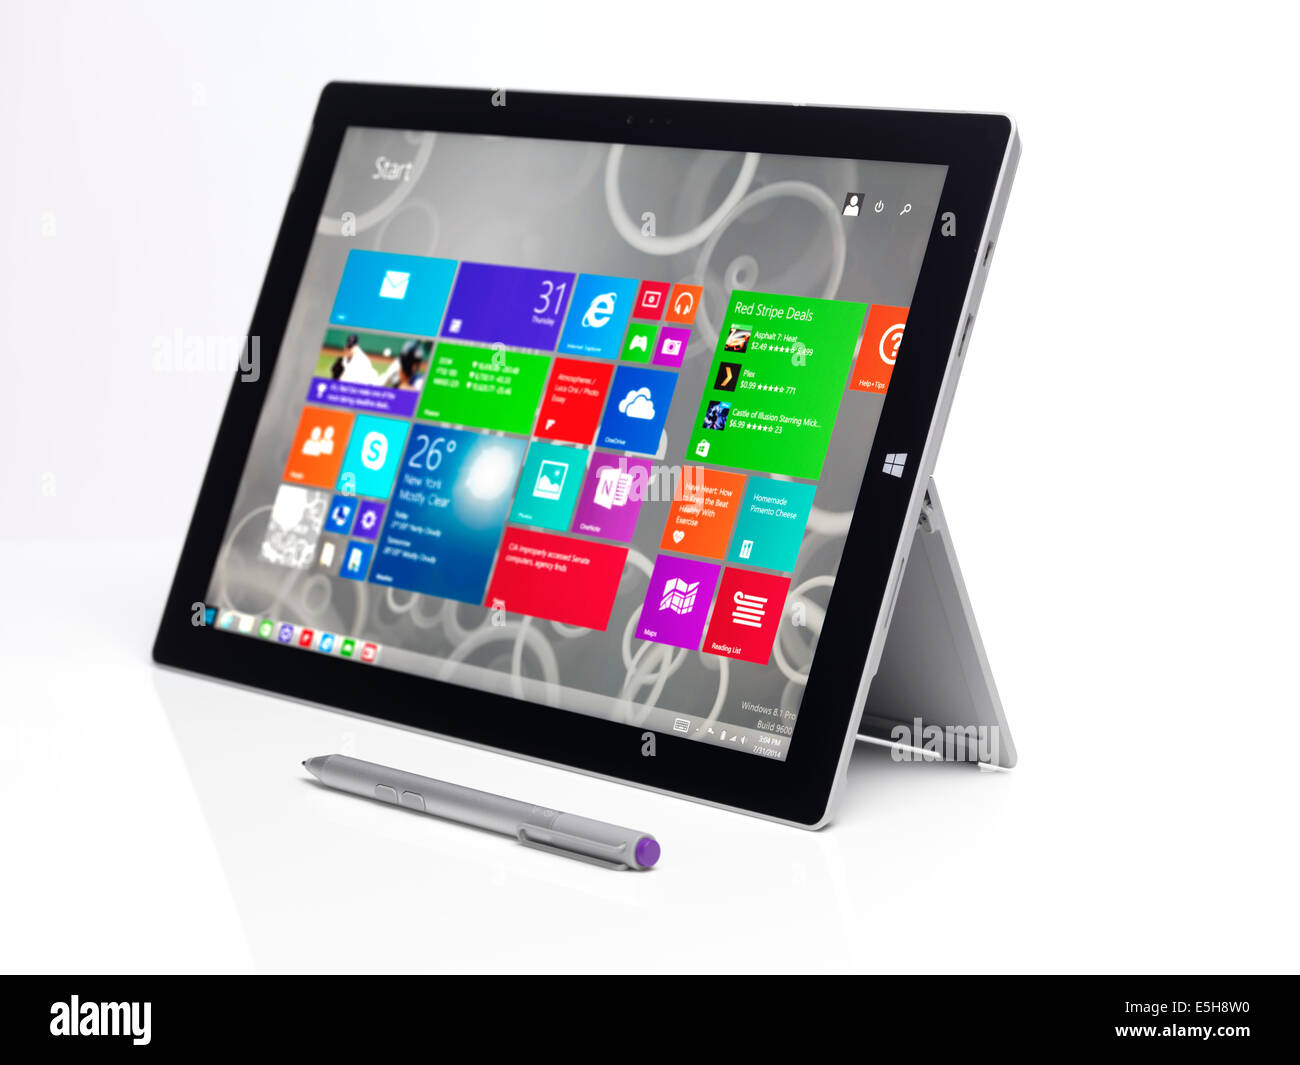 Microsoft Surface Pro 3 tablet computer with Windows 8 start screen on display isolated on white background - Stock Image